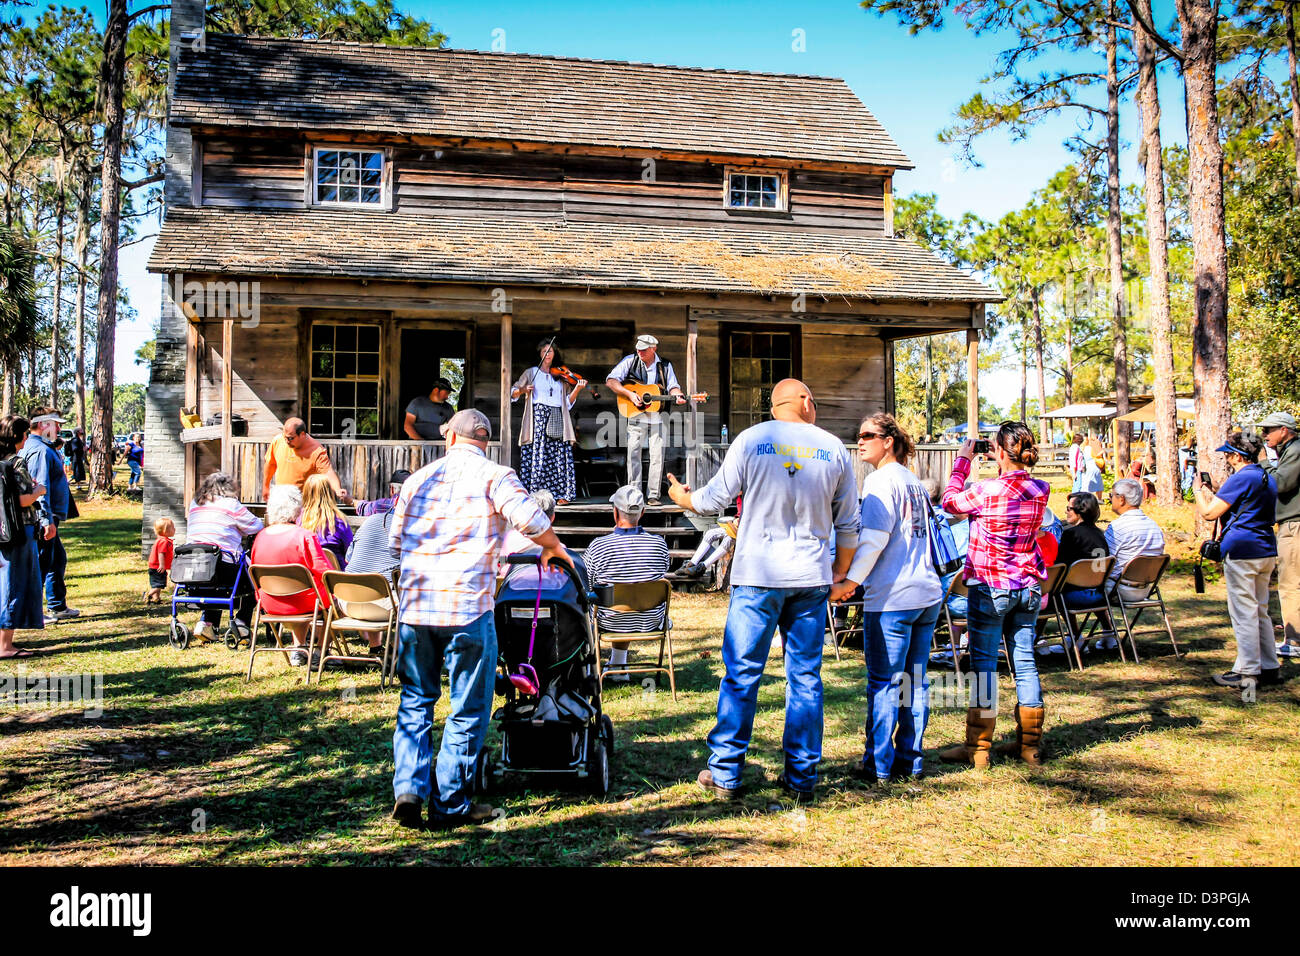 People recreating the old Pioneer spirit with music of the time at the Crowley Pioneer event in Florida - Stock Image